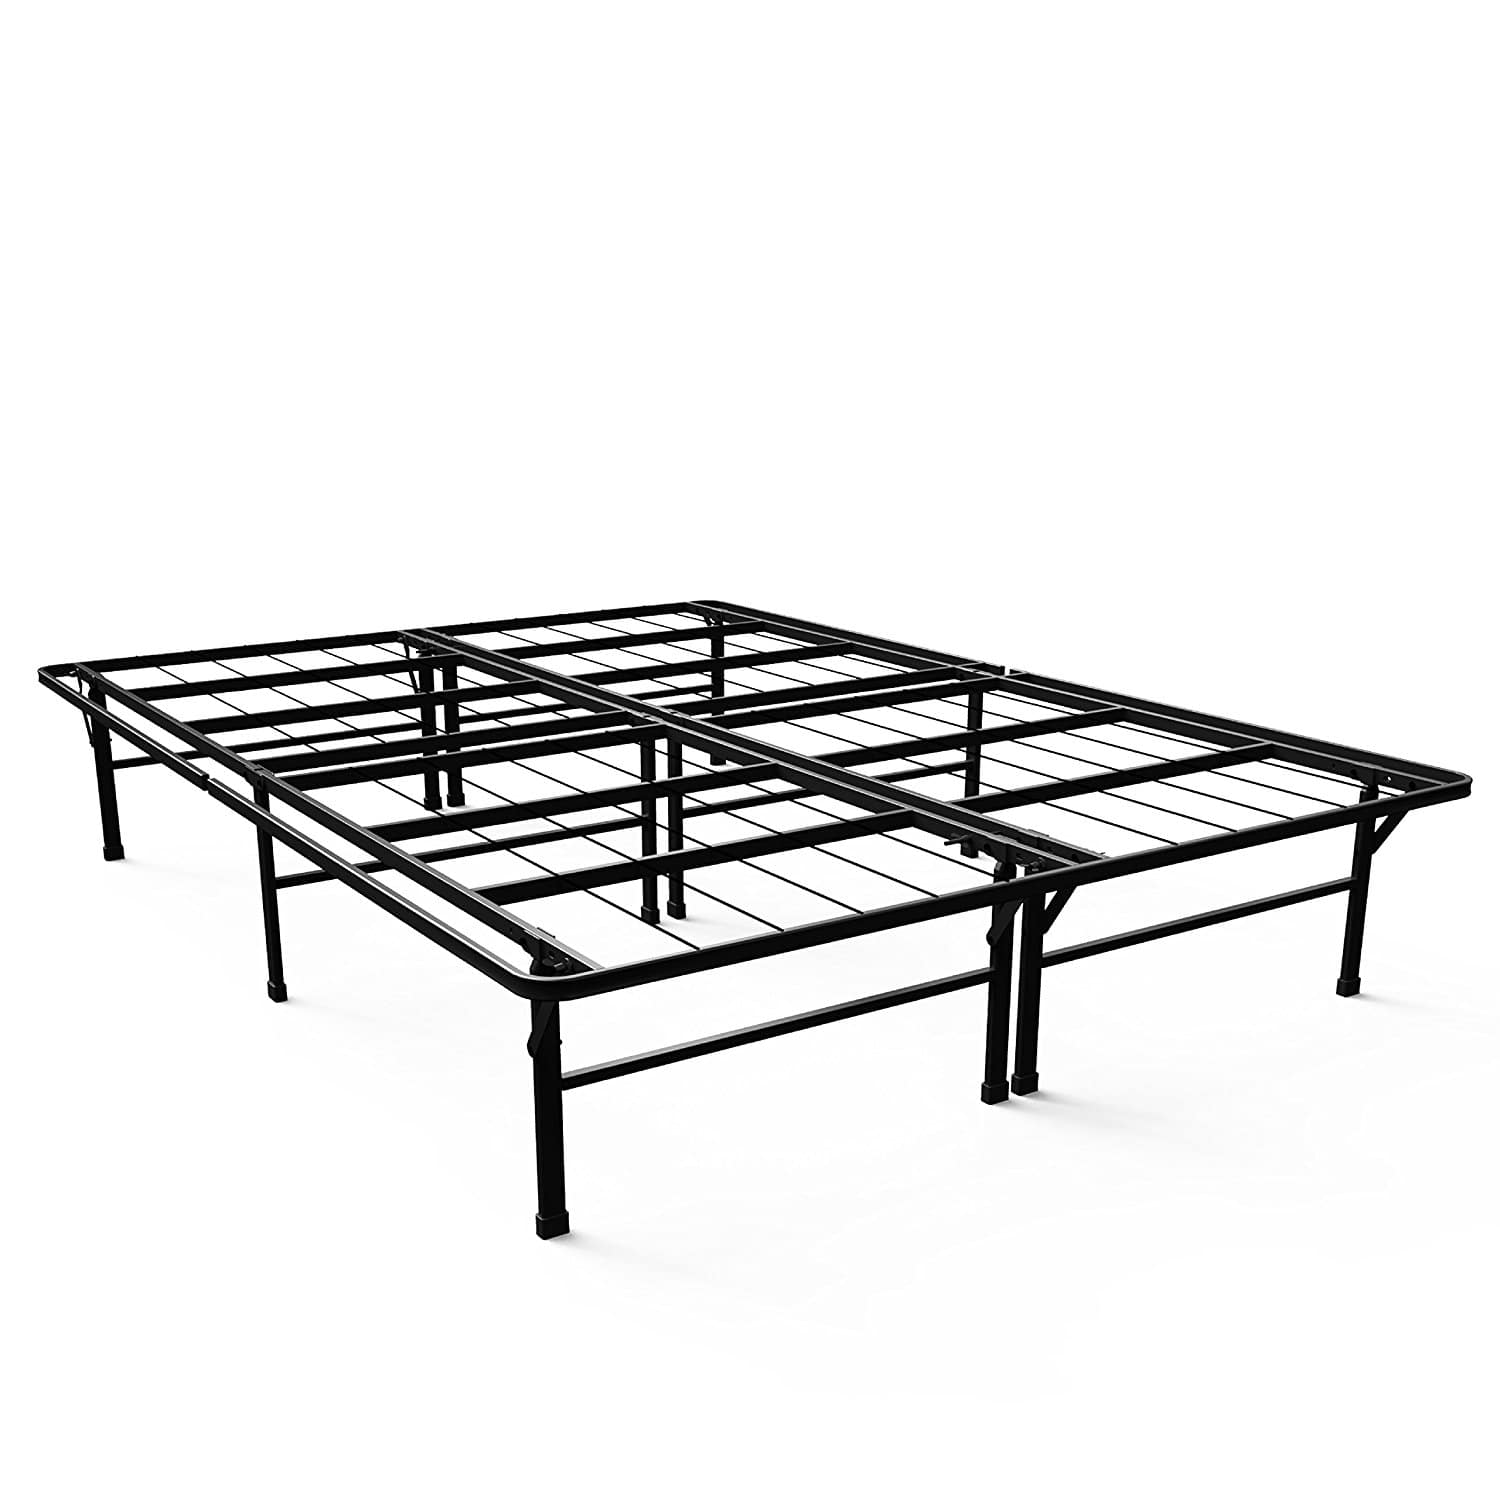 Unique Zinus SmartBase Deluxe Platform Bed Frame Queen Full Slickdeals net